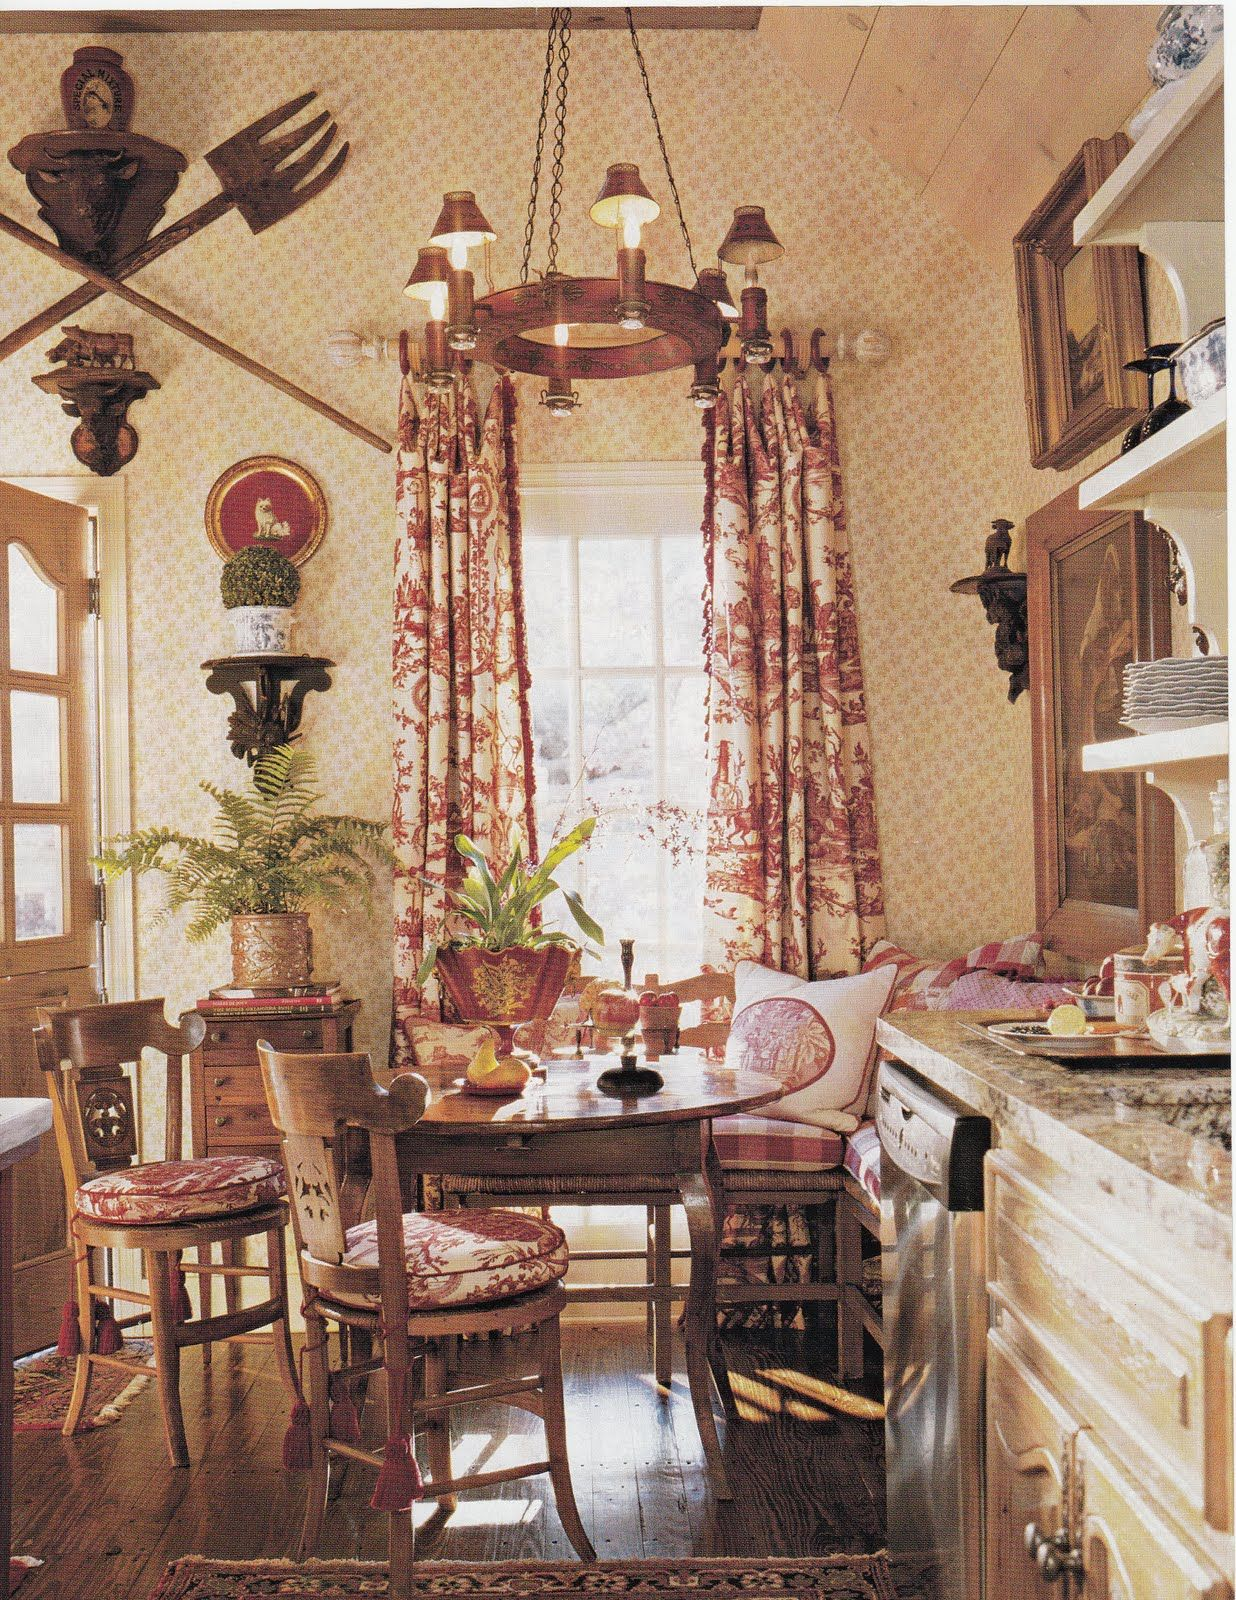 Thanks To Hydrangea Hill Cottage Kay There Is Wonderful Blog Info This Photo An Exa French Country Dining French Country Decorating French Country Design